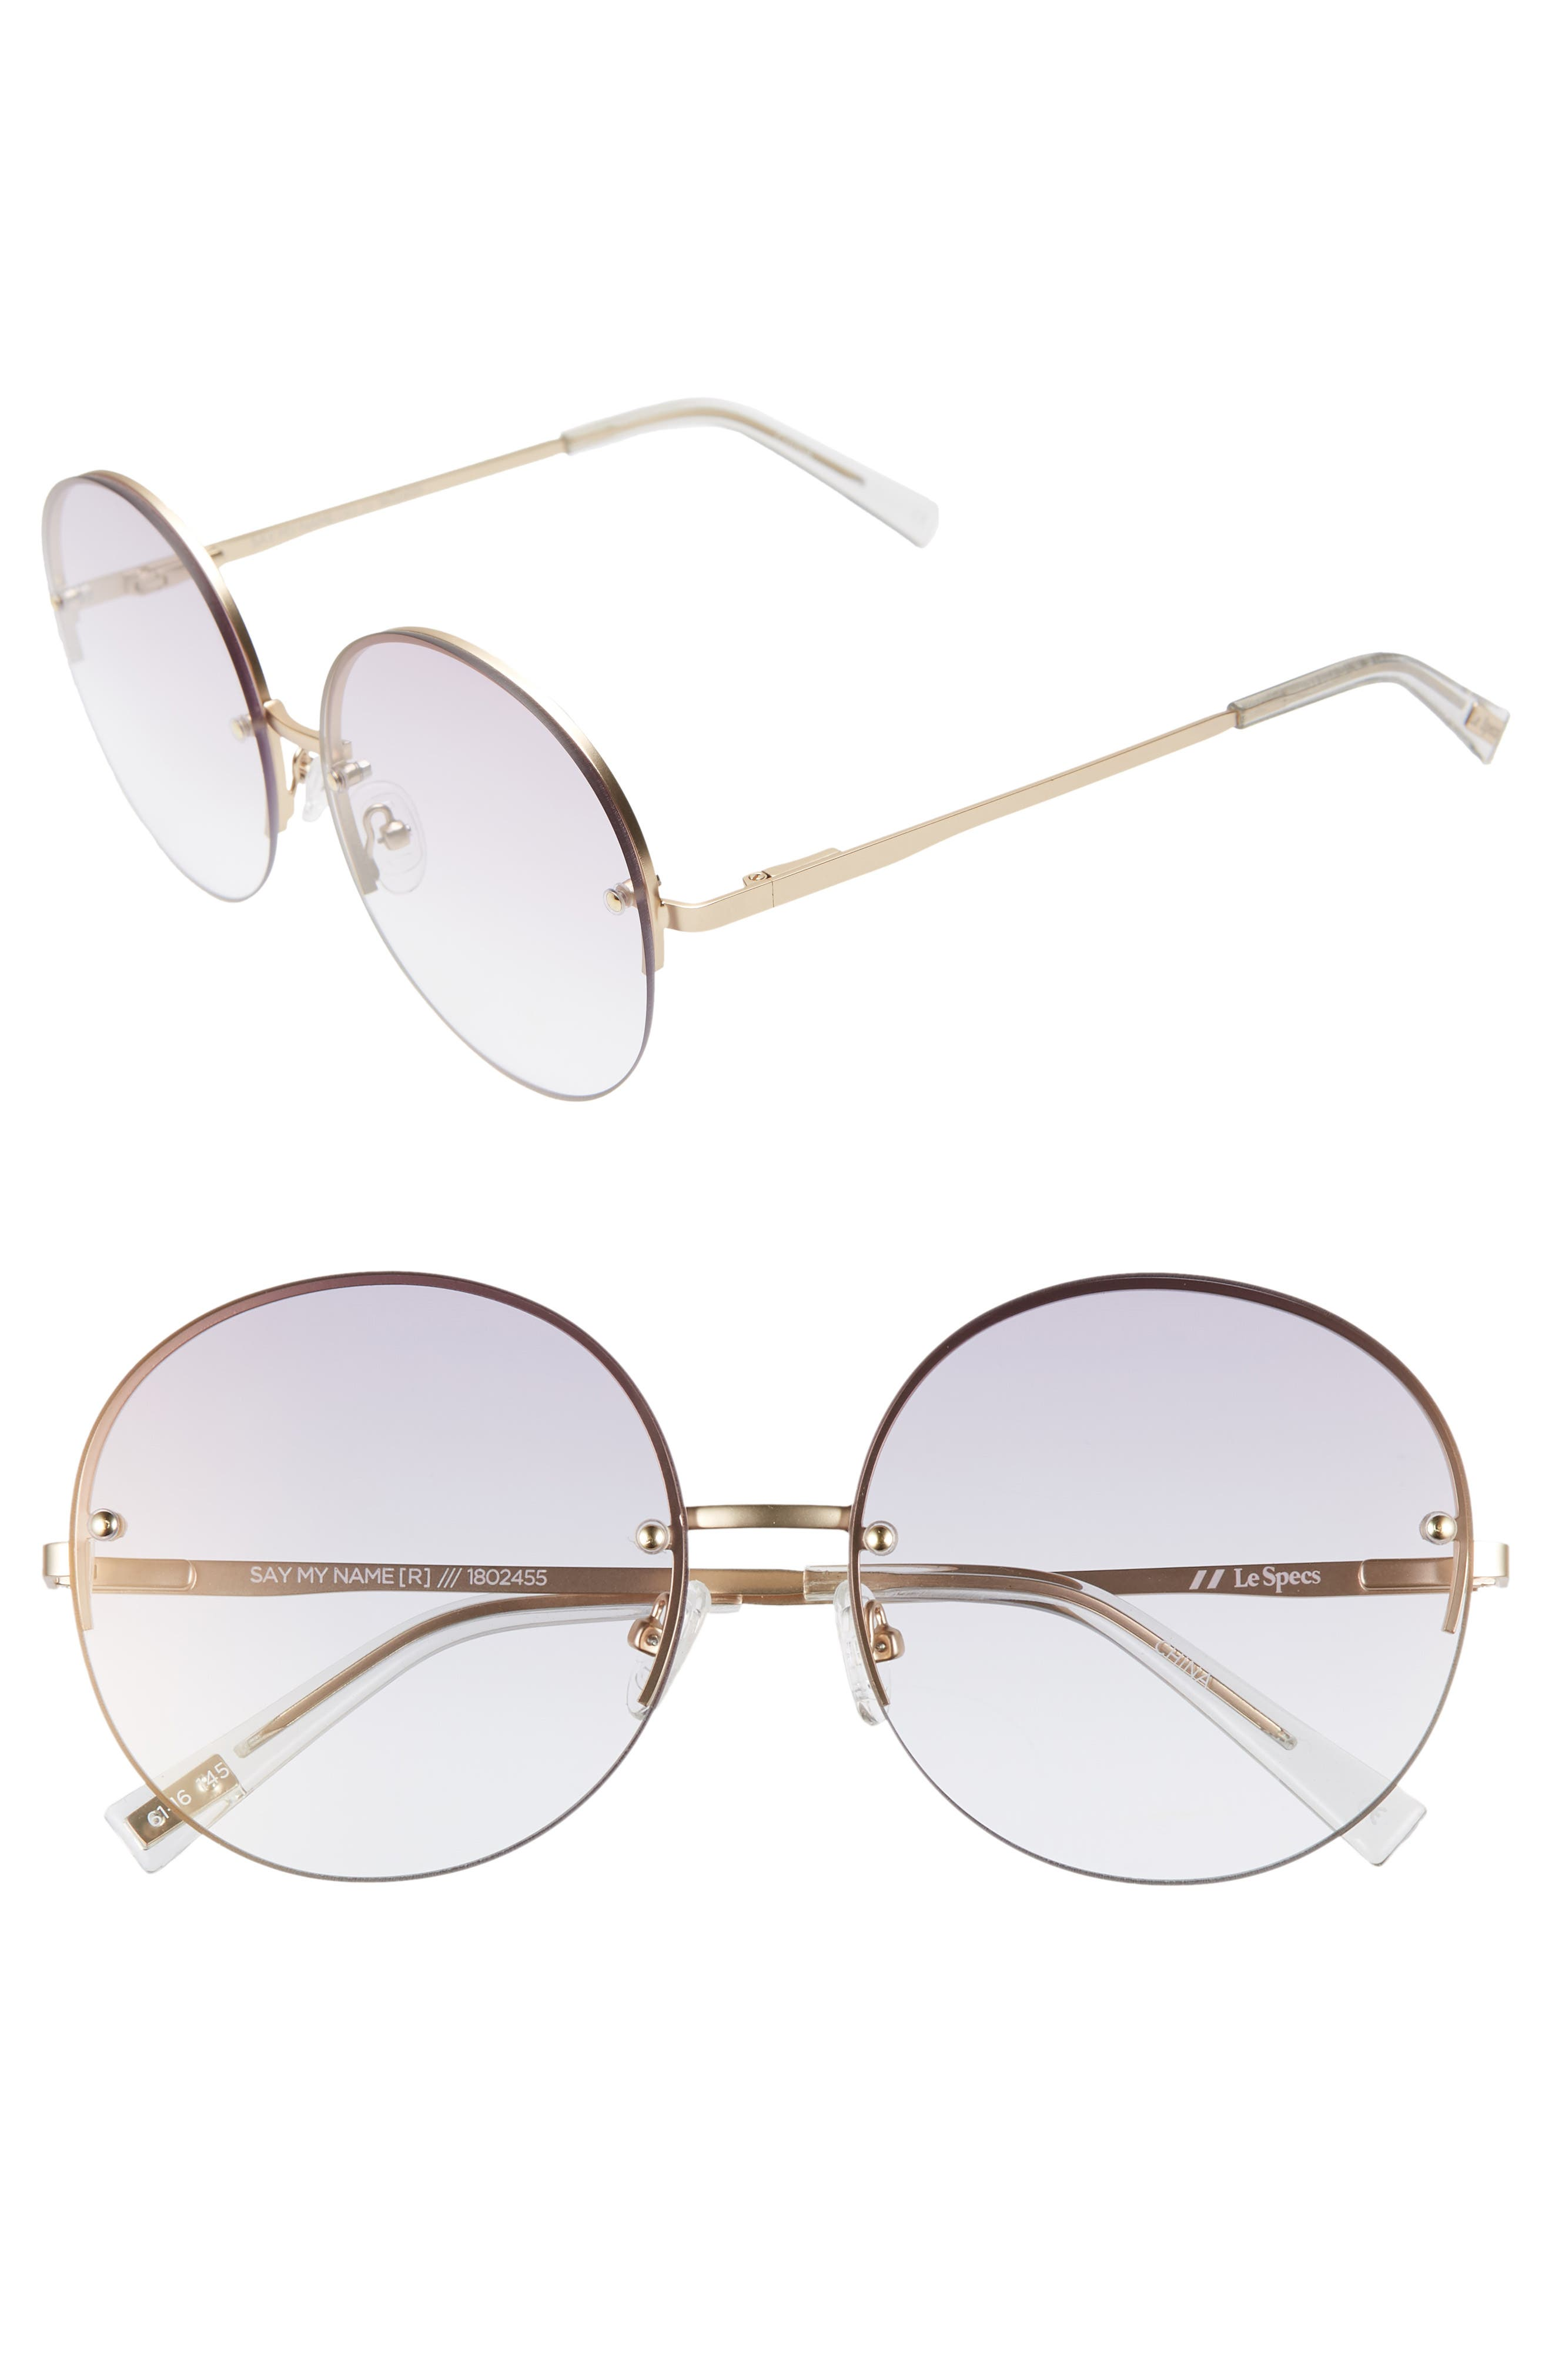 Le Specs Say My Name 61Mm Semi Rimless Round Sunglasses - Vegas Gold